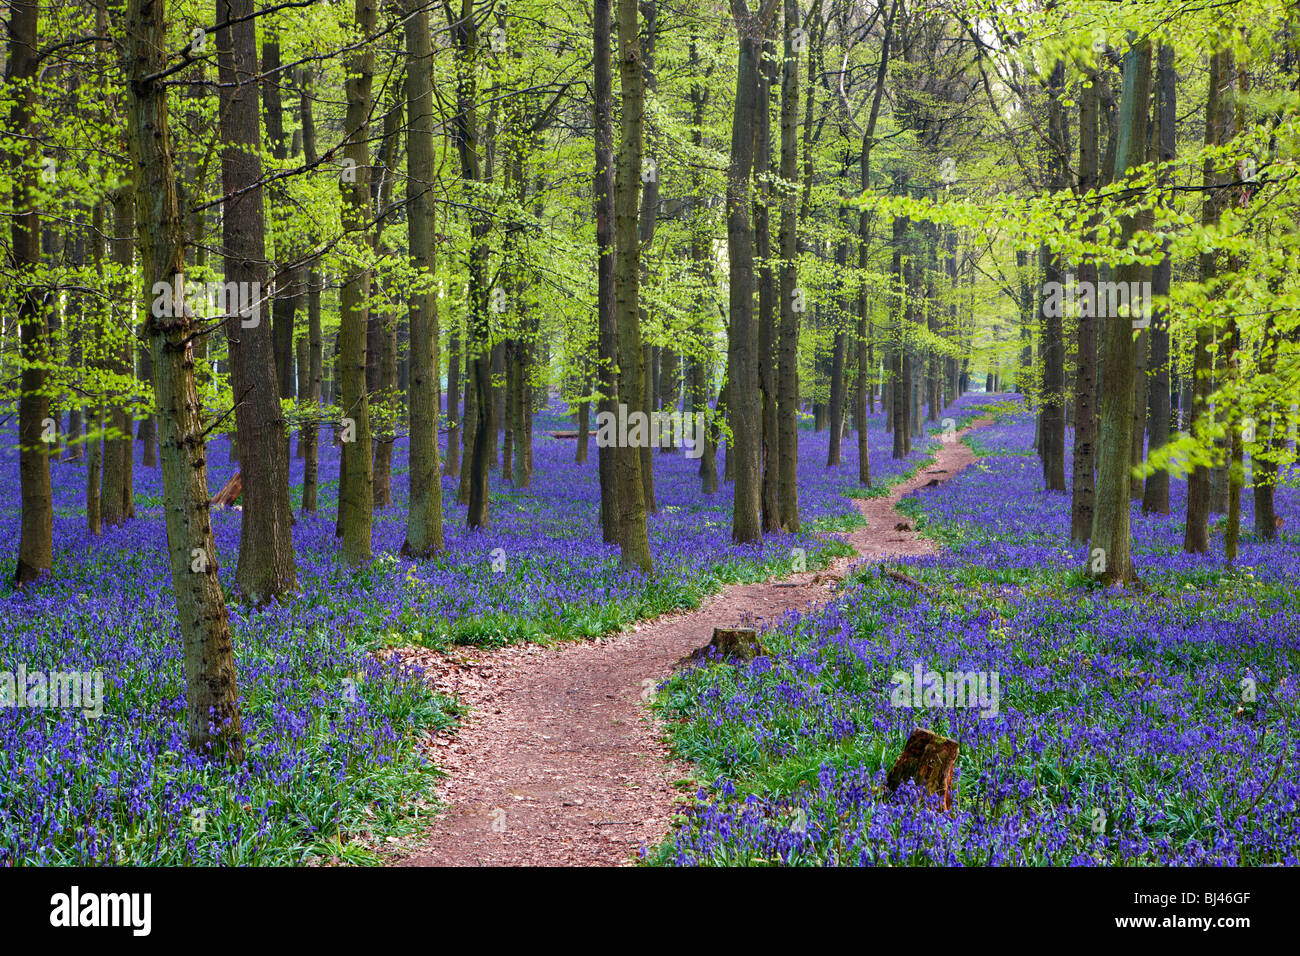 Pathway through a bluebell wood - Stock Image